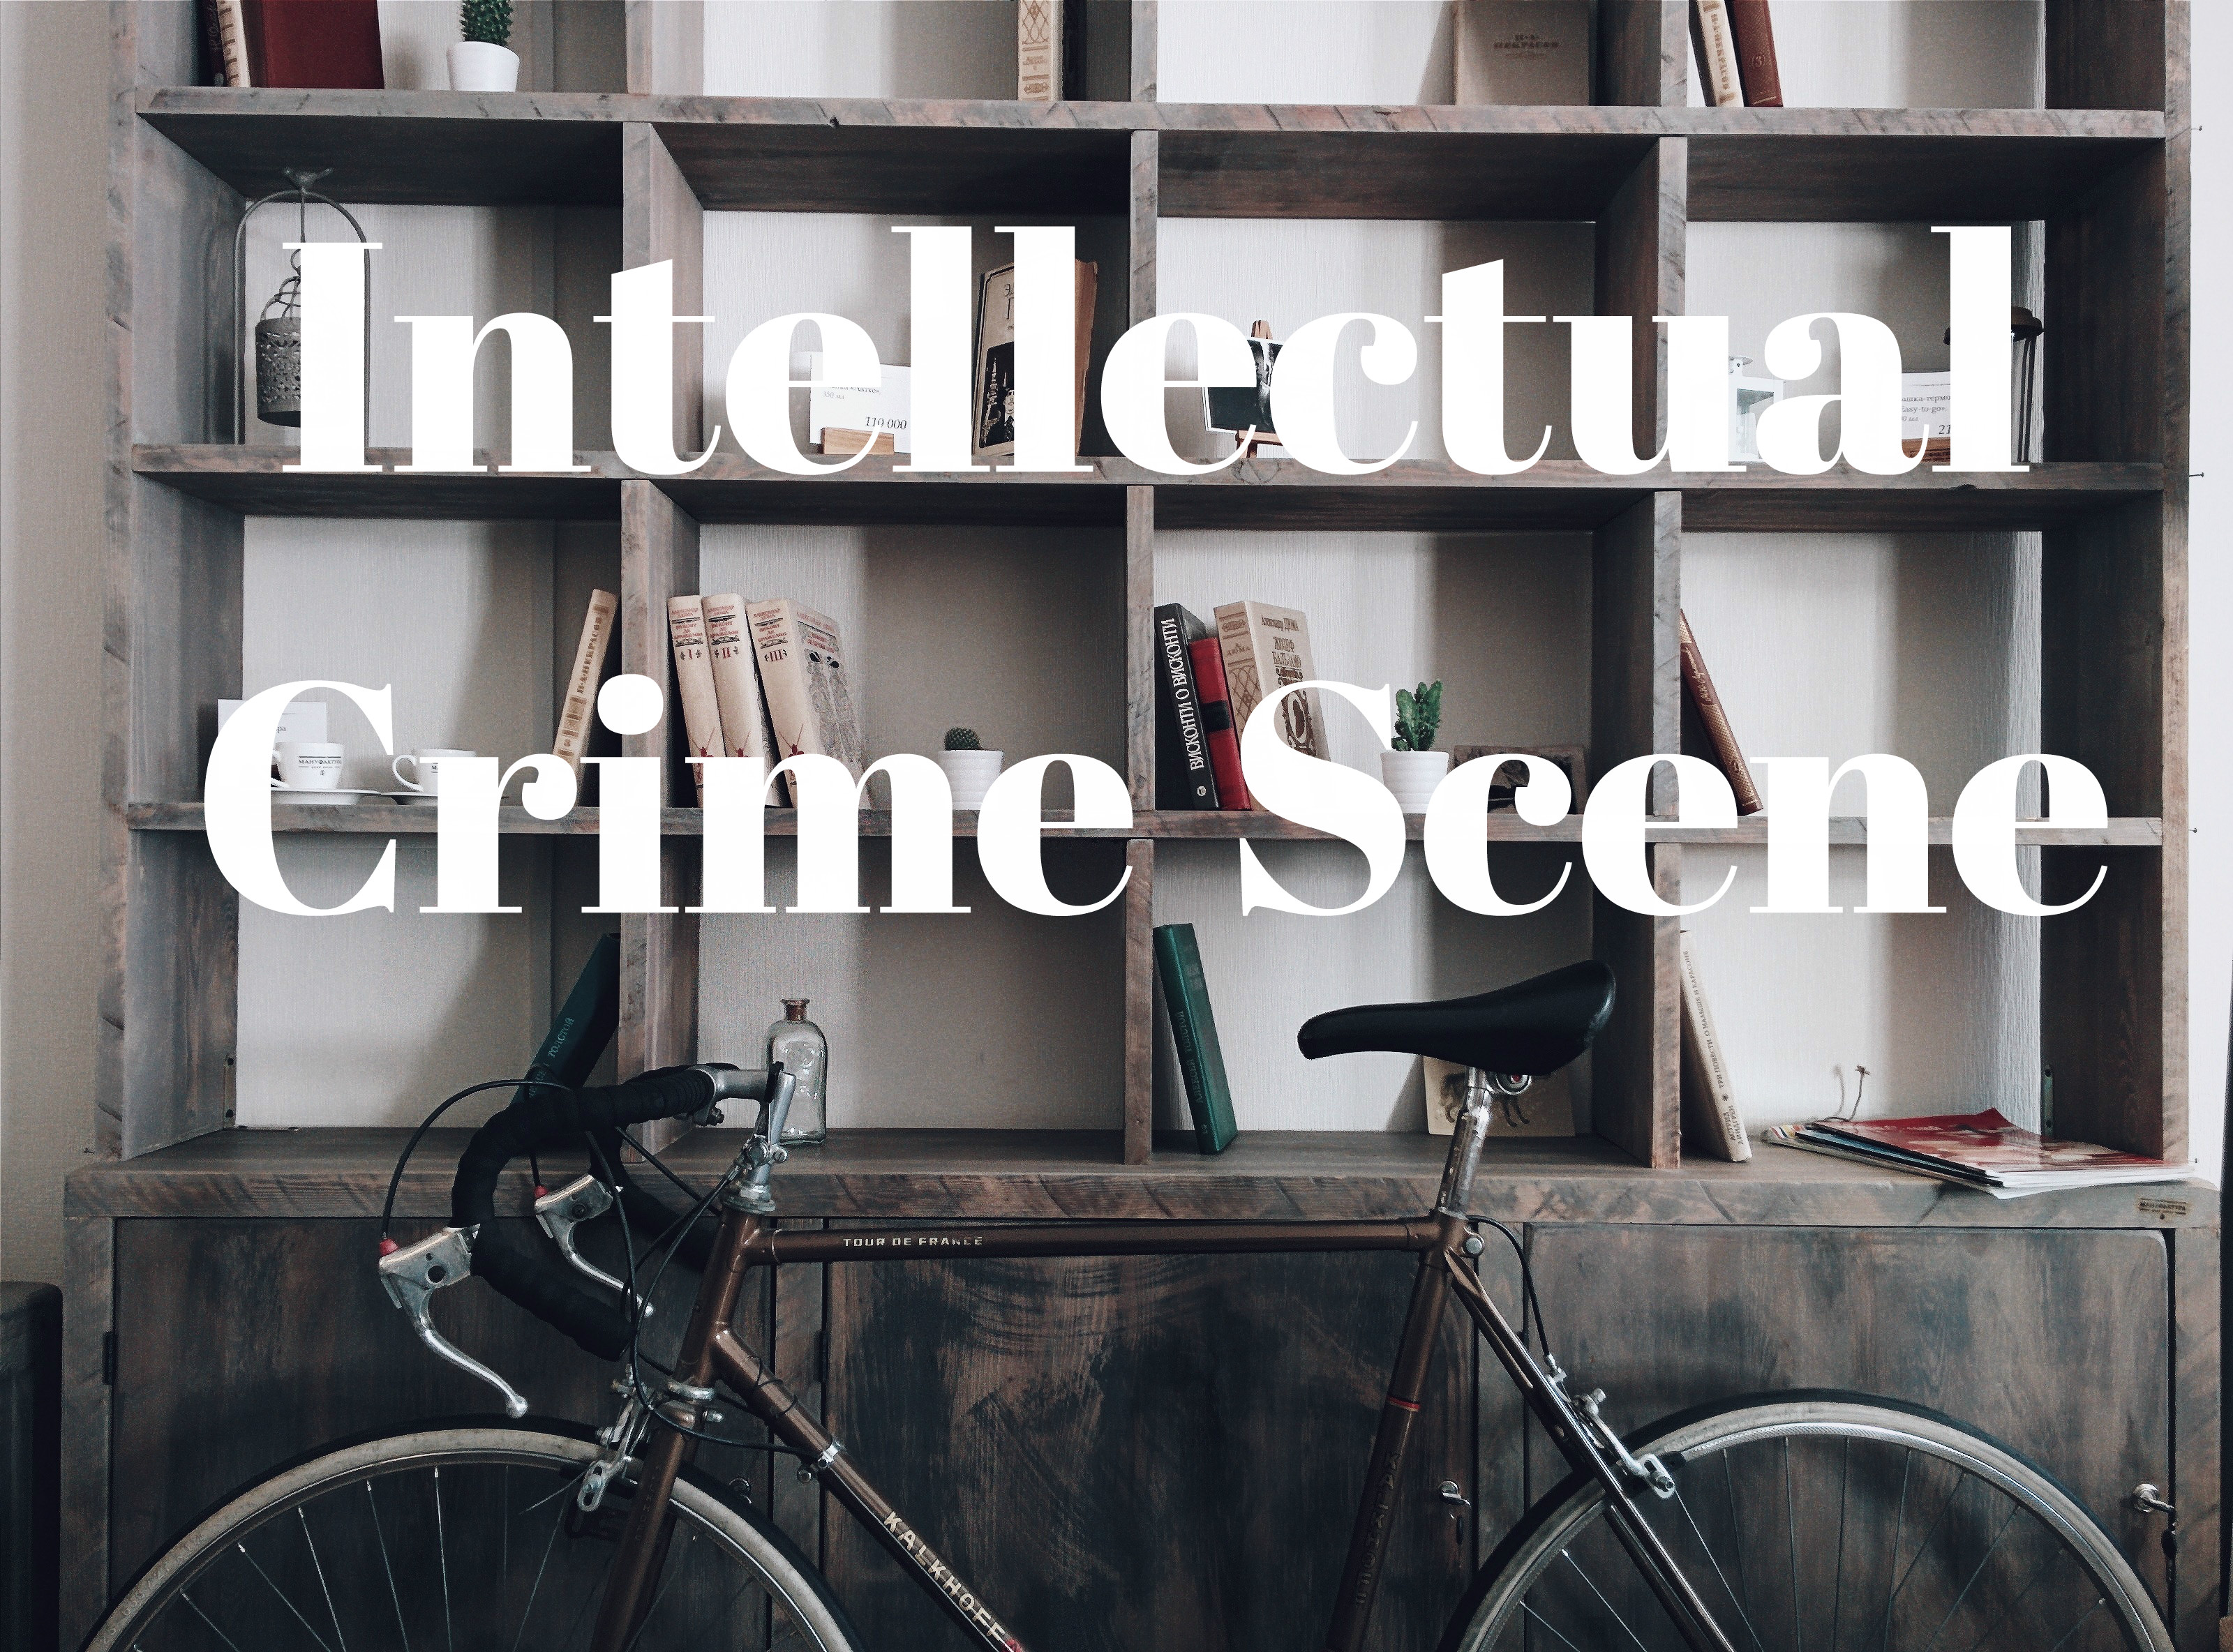 Intellectual Crime Scene